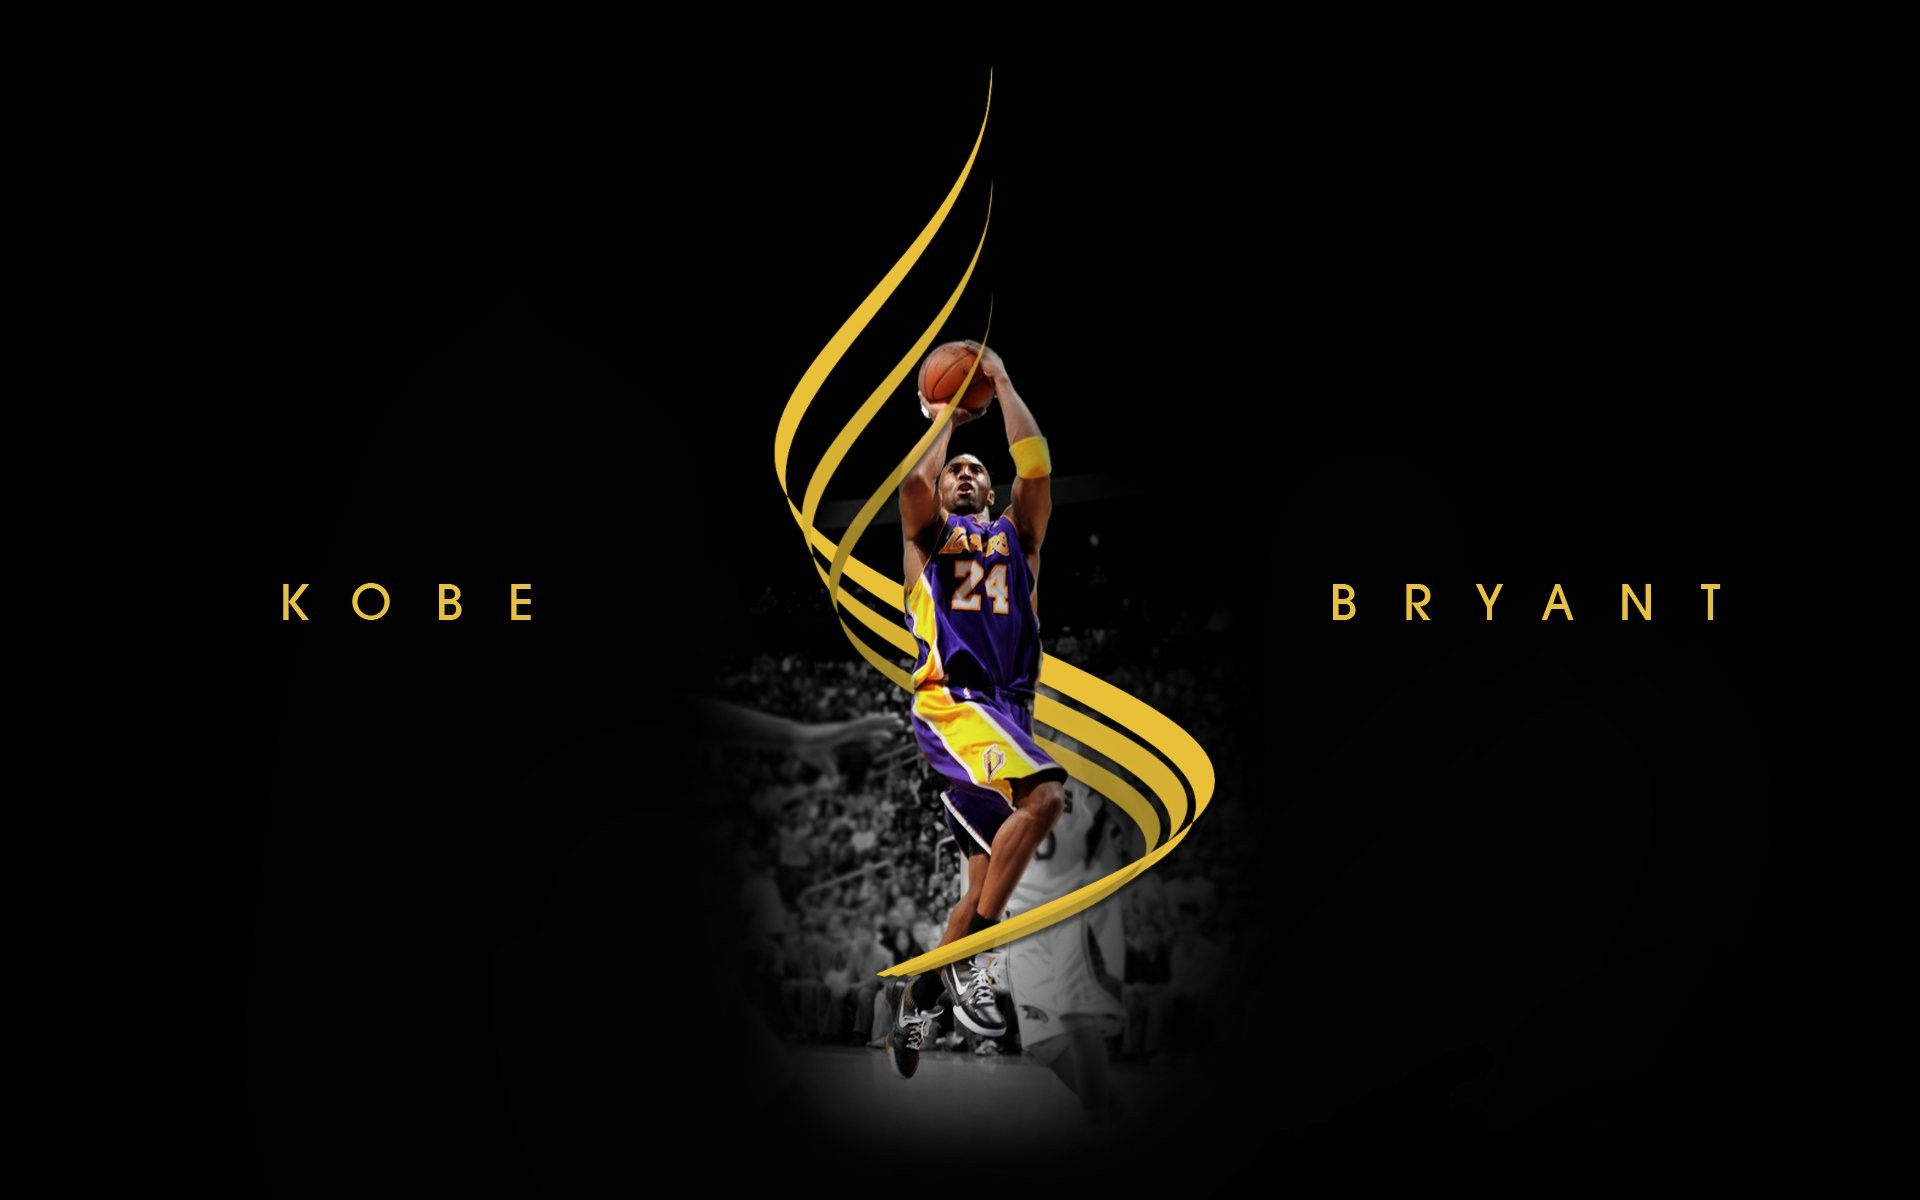 Kobe Bryant Logo Wallpaper Wide Is Cool Wallpapers